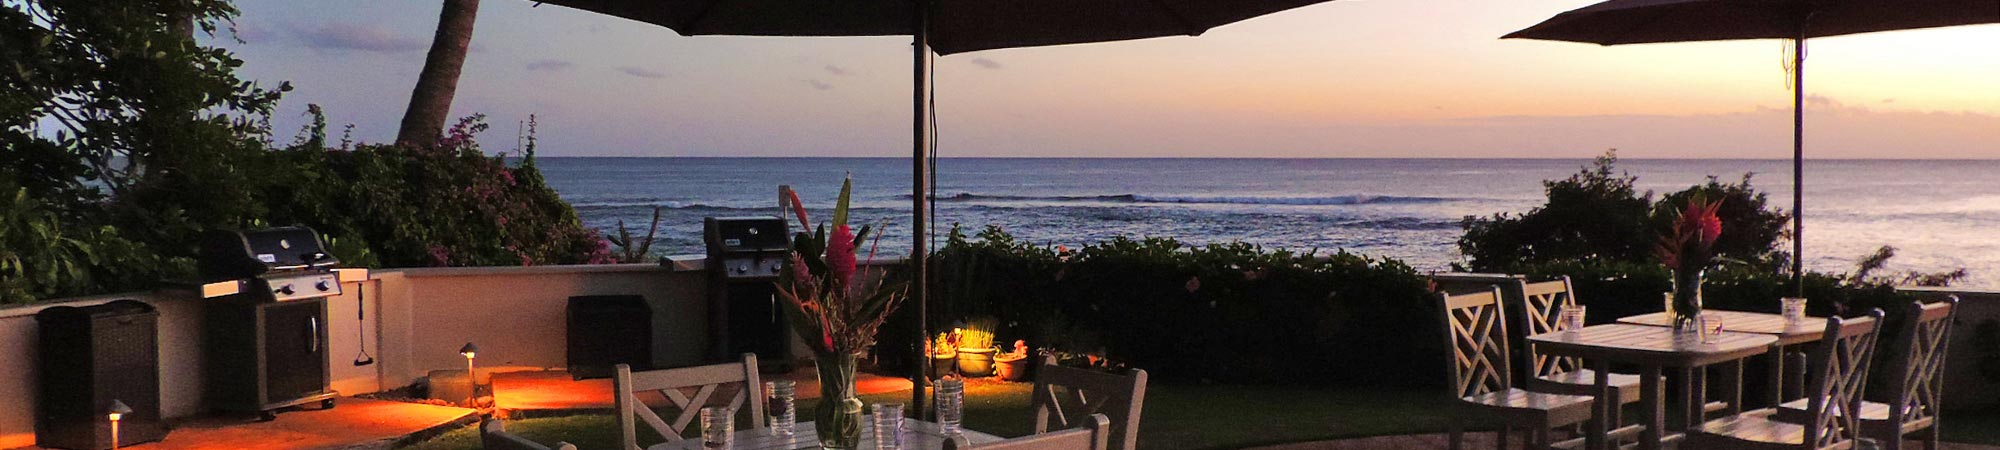 alihi lani poolside tables sunset